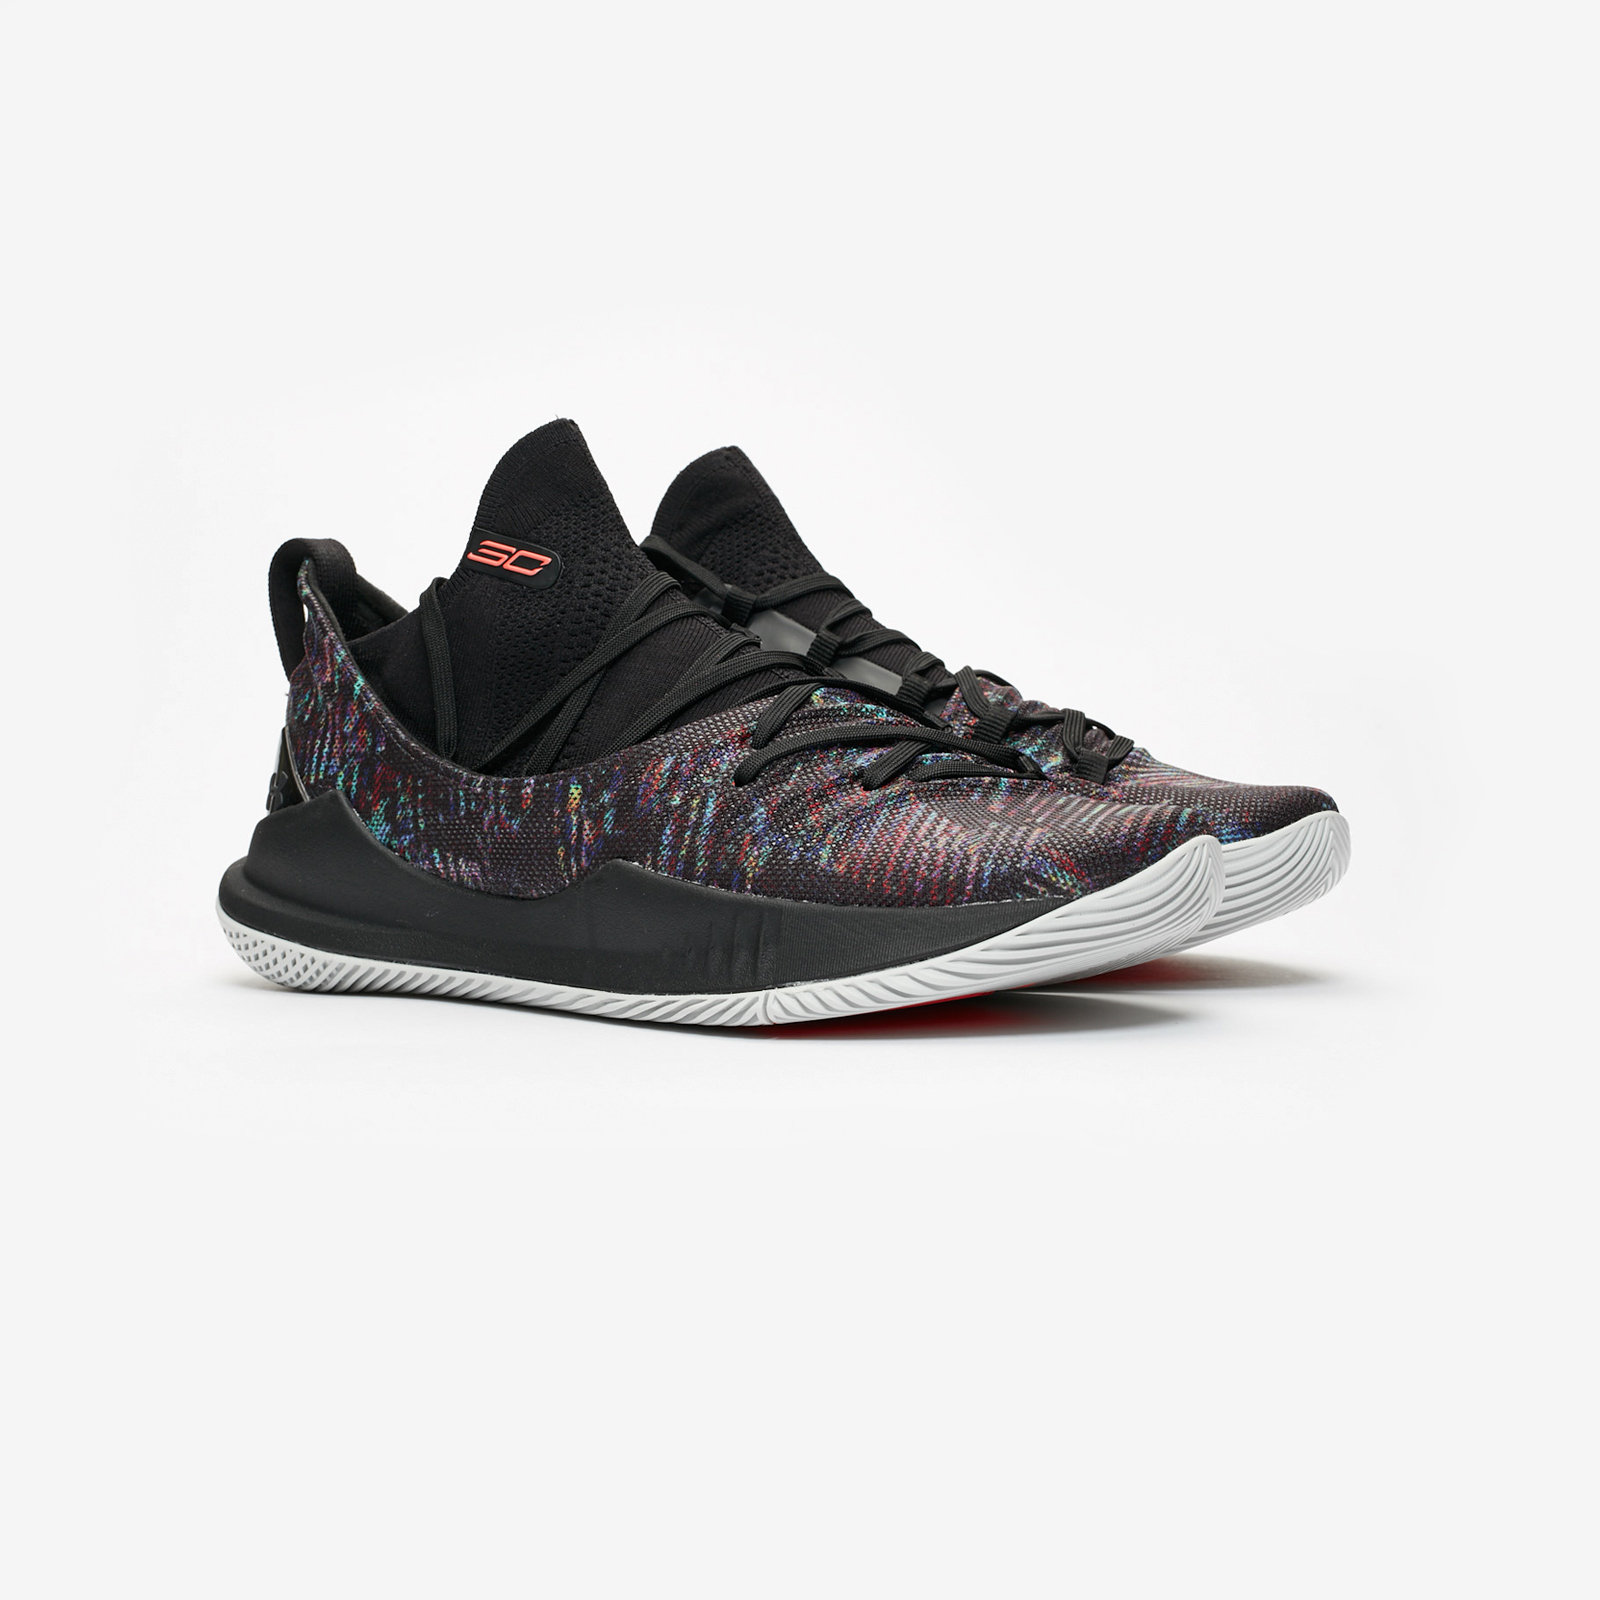 8be7e115299 Under Armour Curry 5 - 3020657-005 - Sneakersnstuff